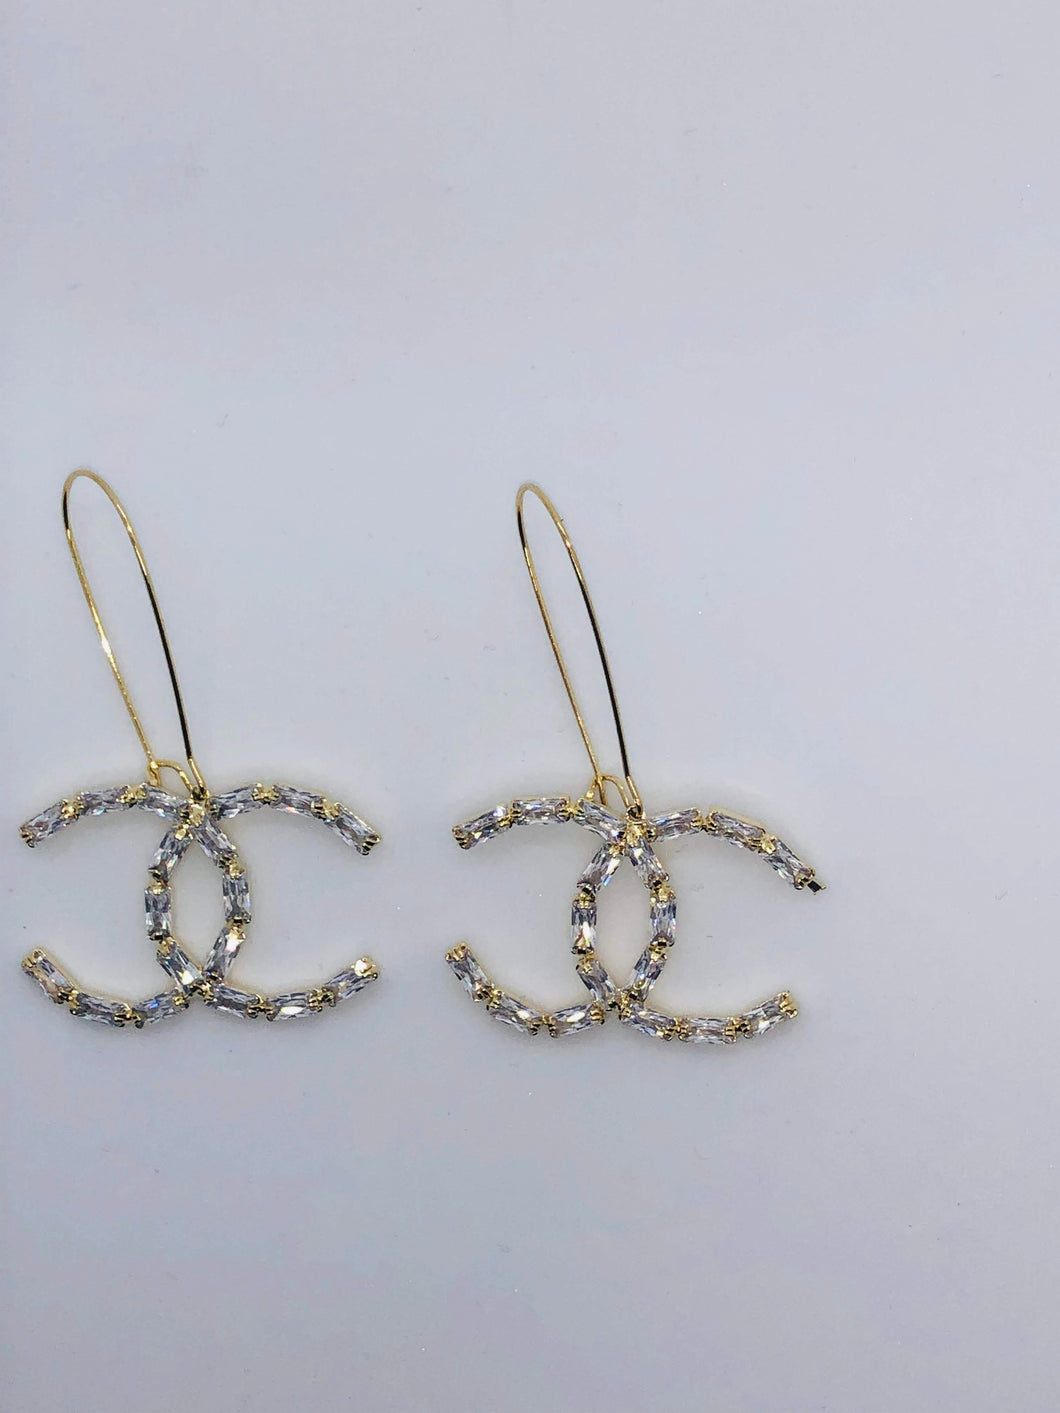 CHANEL EARRINGS - Hustla Boutique